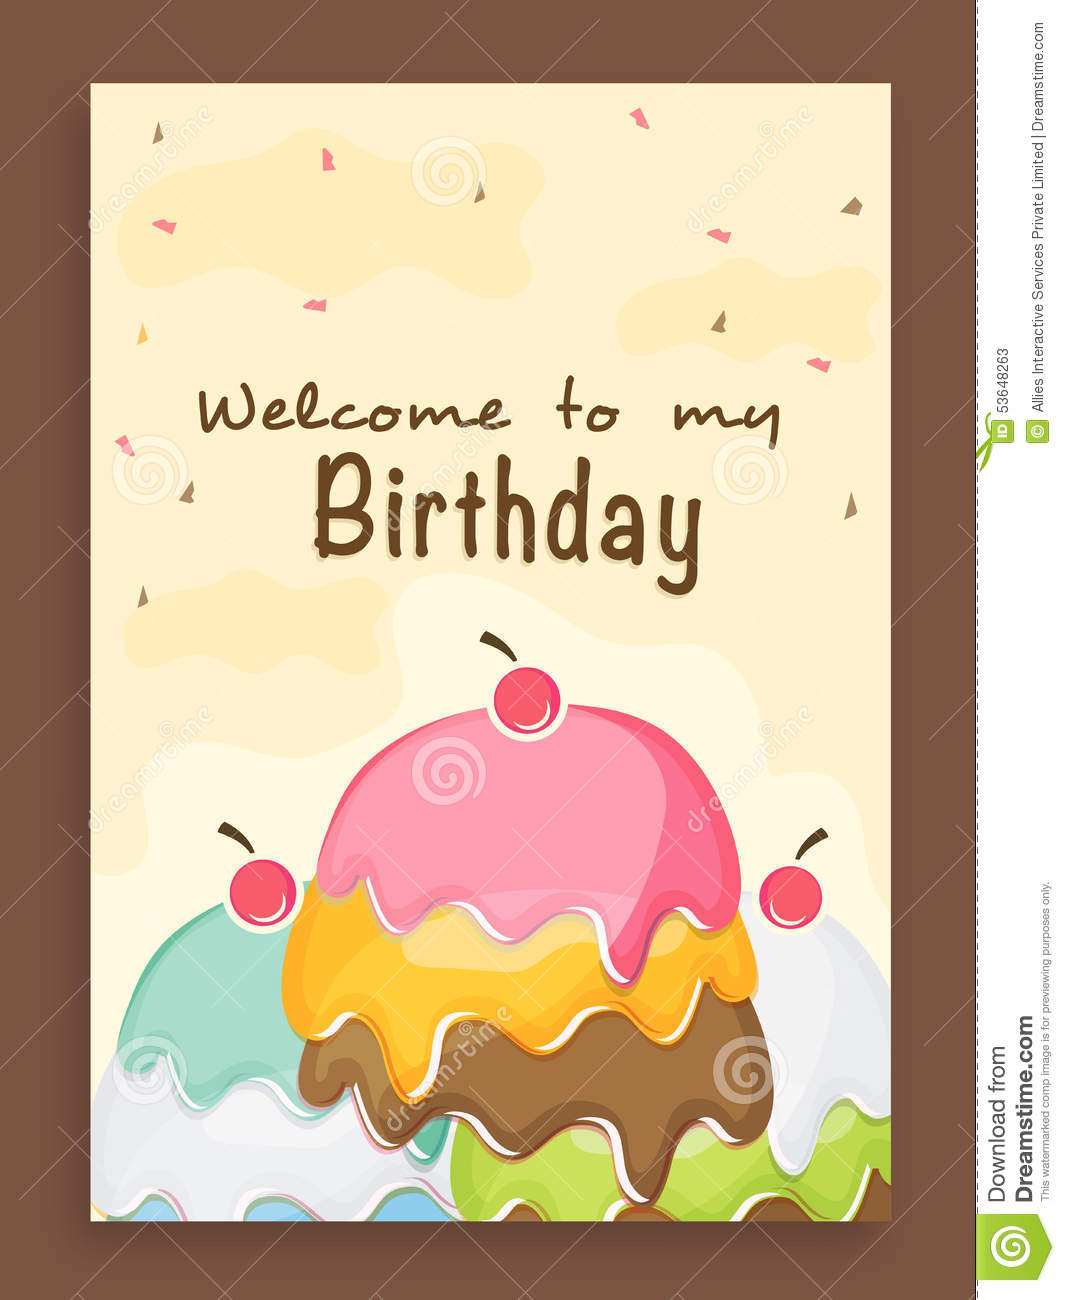 Birthday party cards design invitation card design for birthday party stock photo image stopboris Gallery